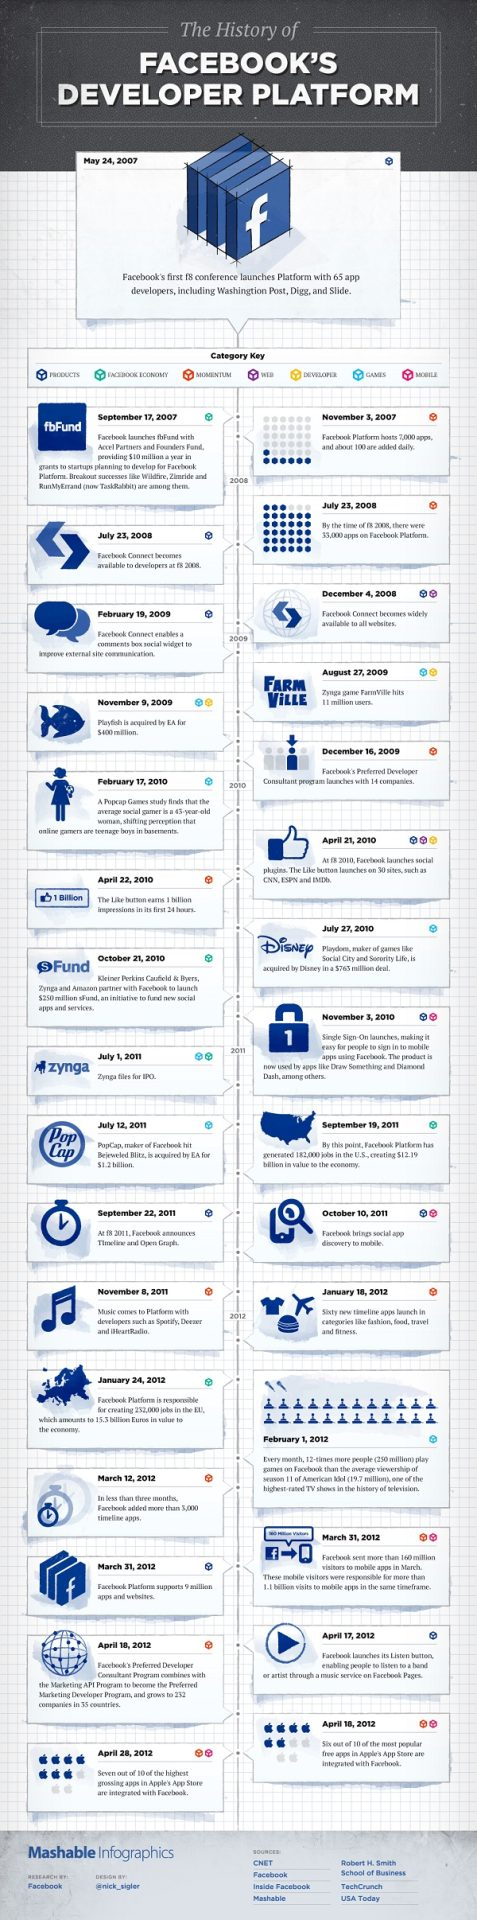 Facebook developer History an Infographic